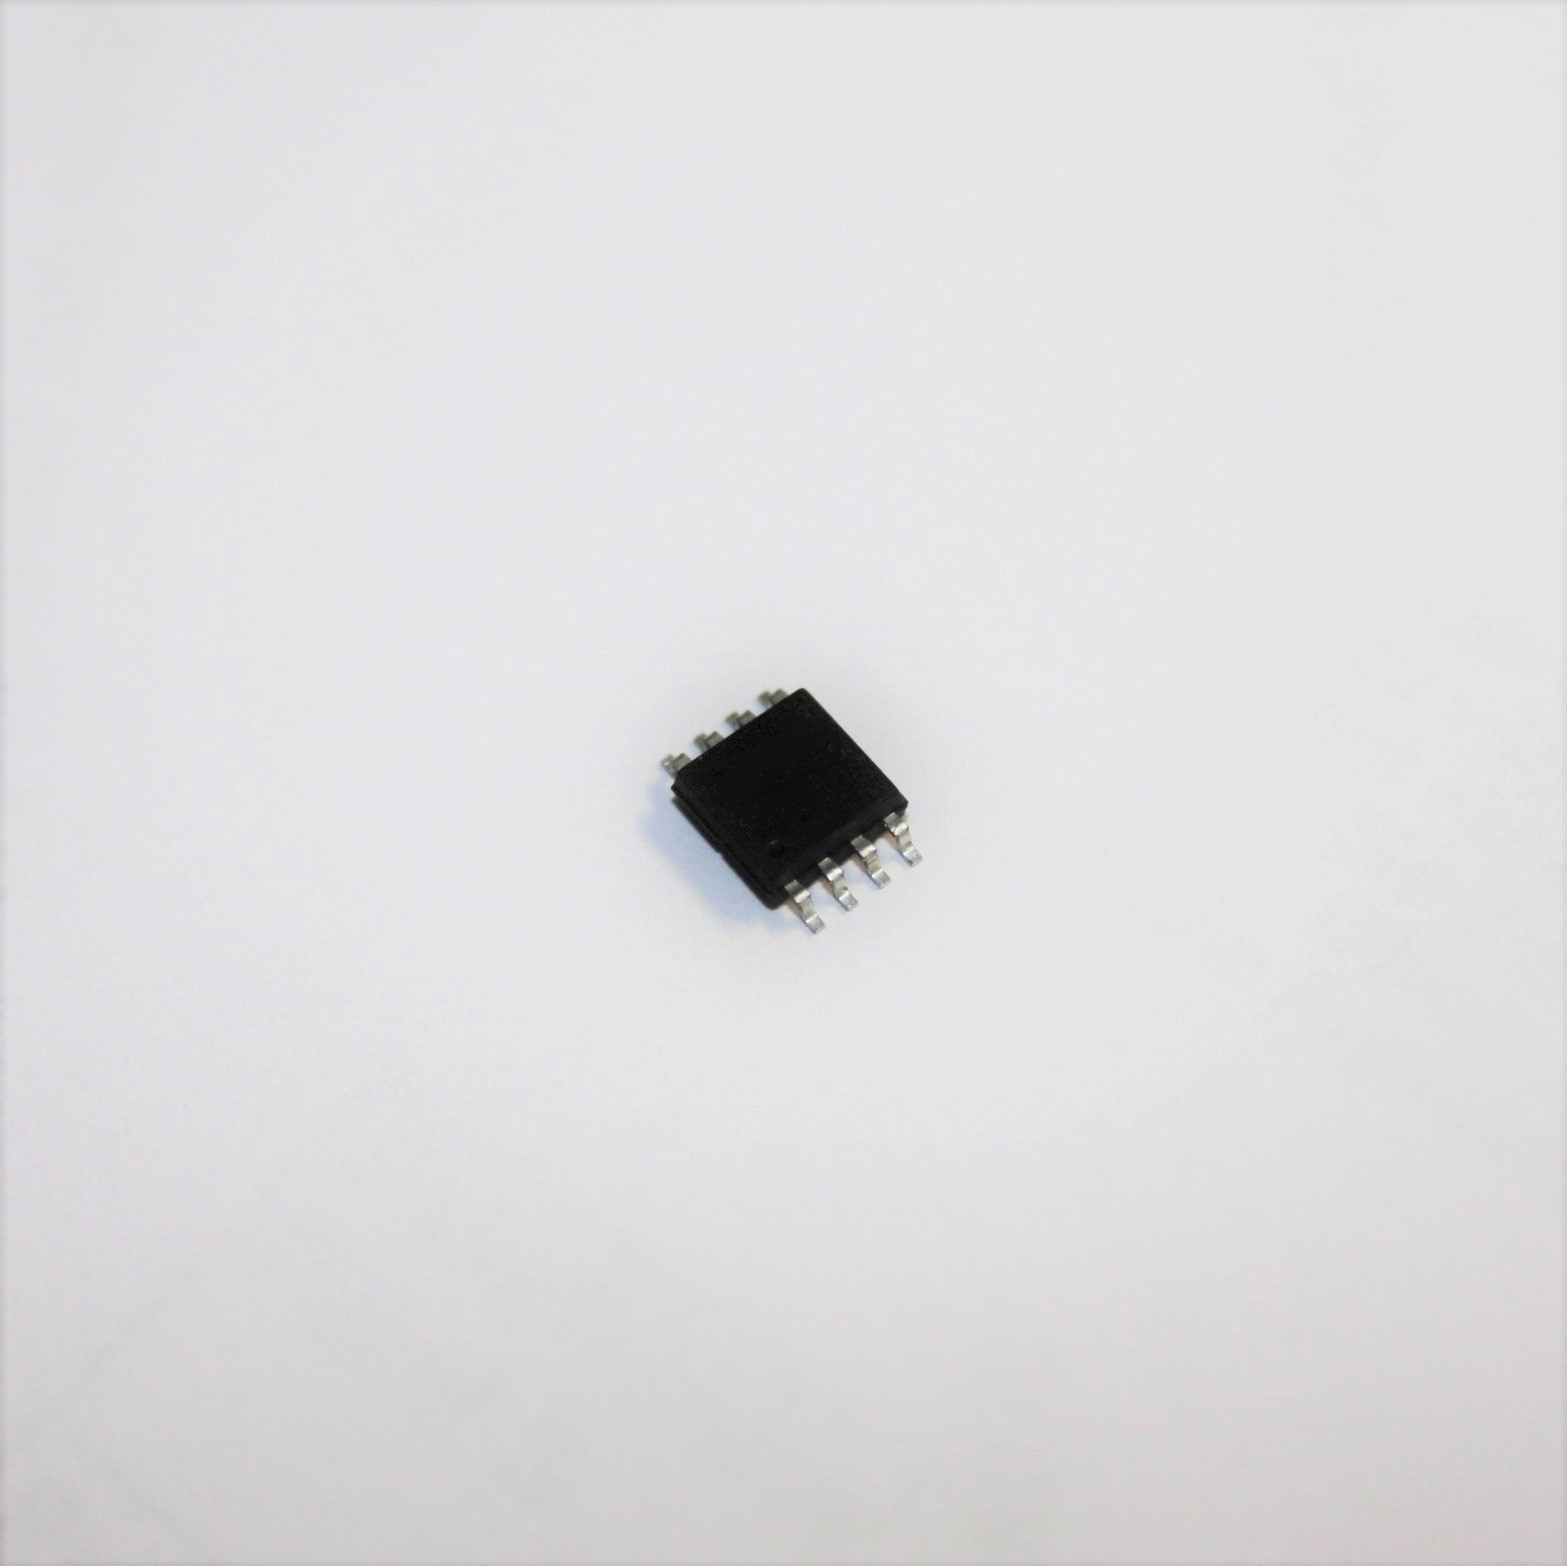 SST25VF016B 50-4C-S2AF, 16 Mbit SPI Serial Flash, SOIC-8